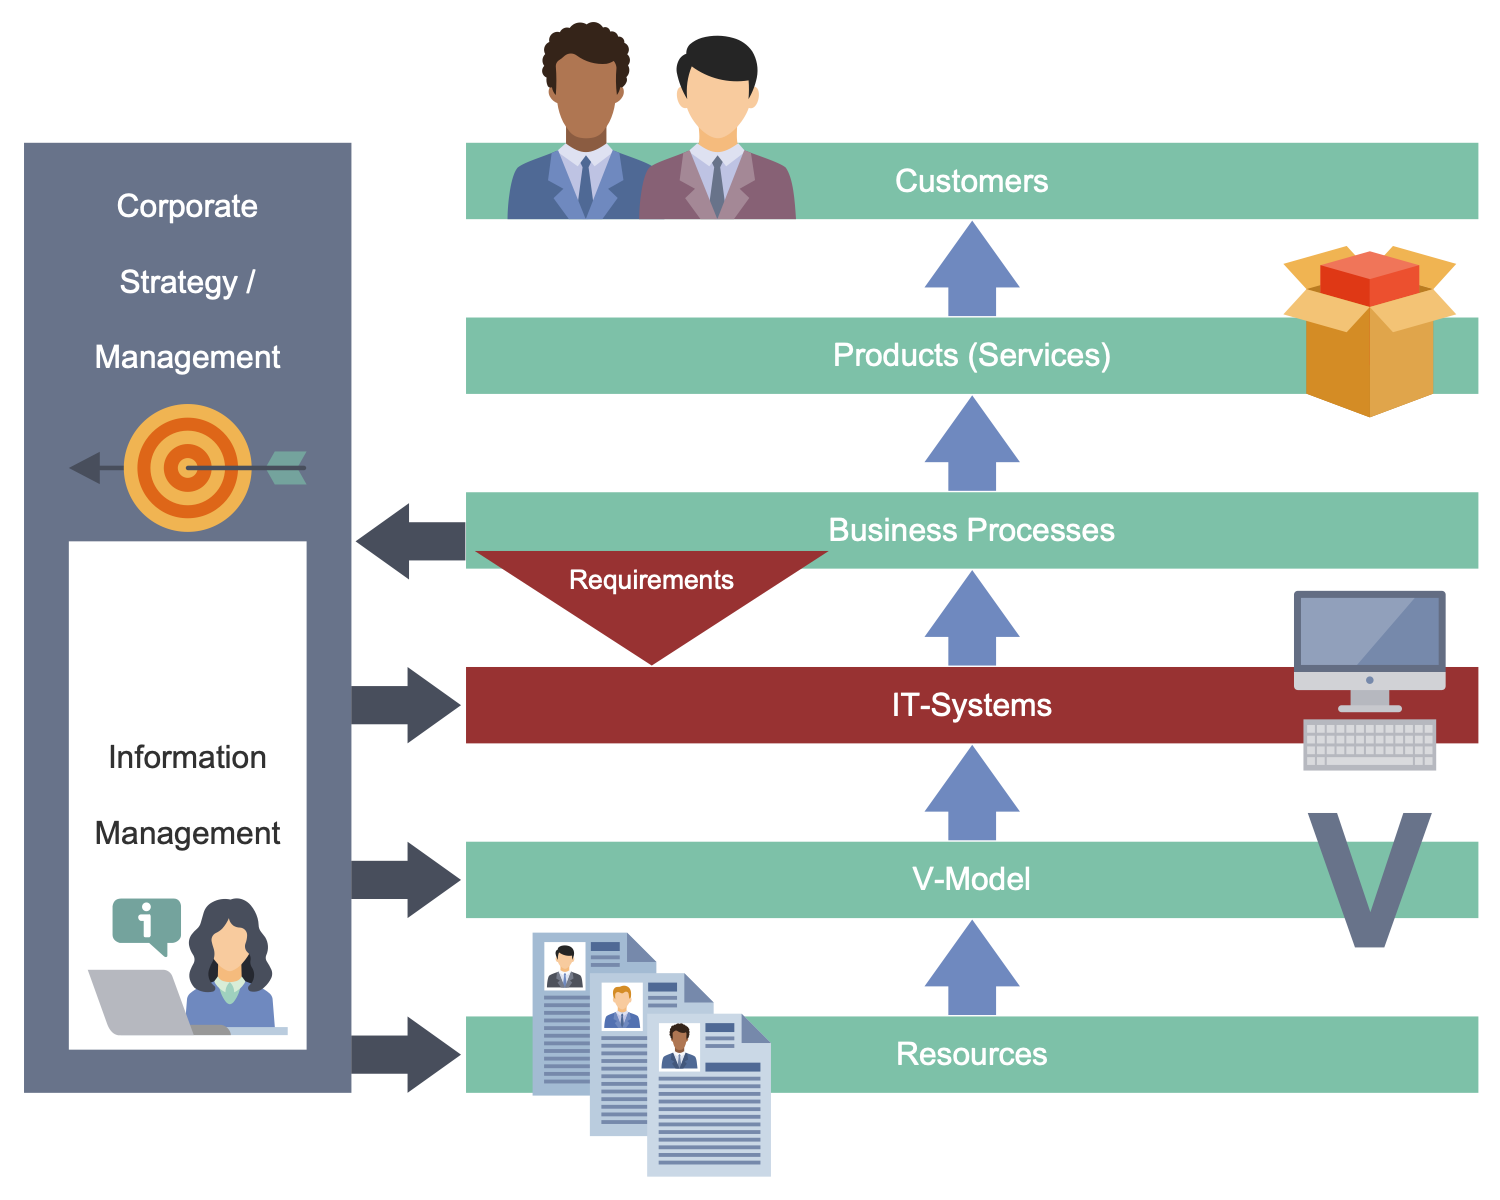 Business Process Workflow Diagram - Business Processes and IT Systems